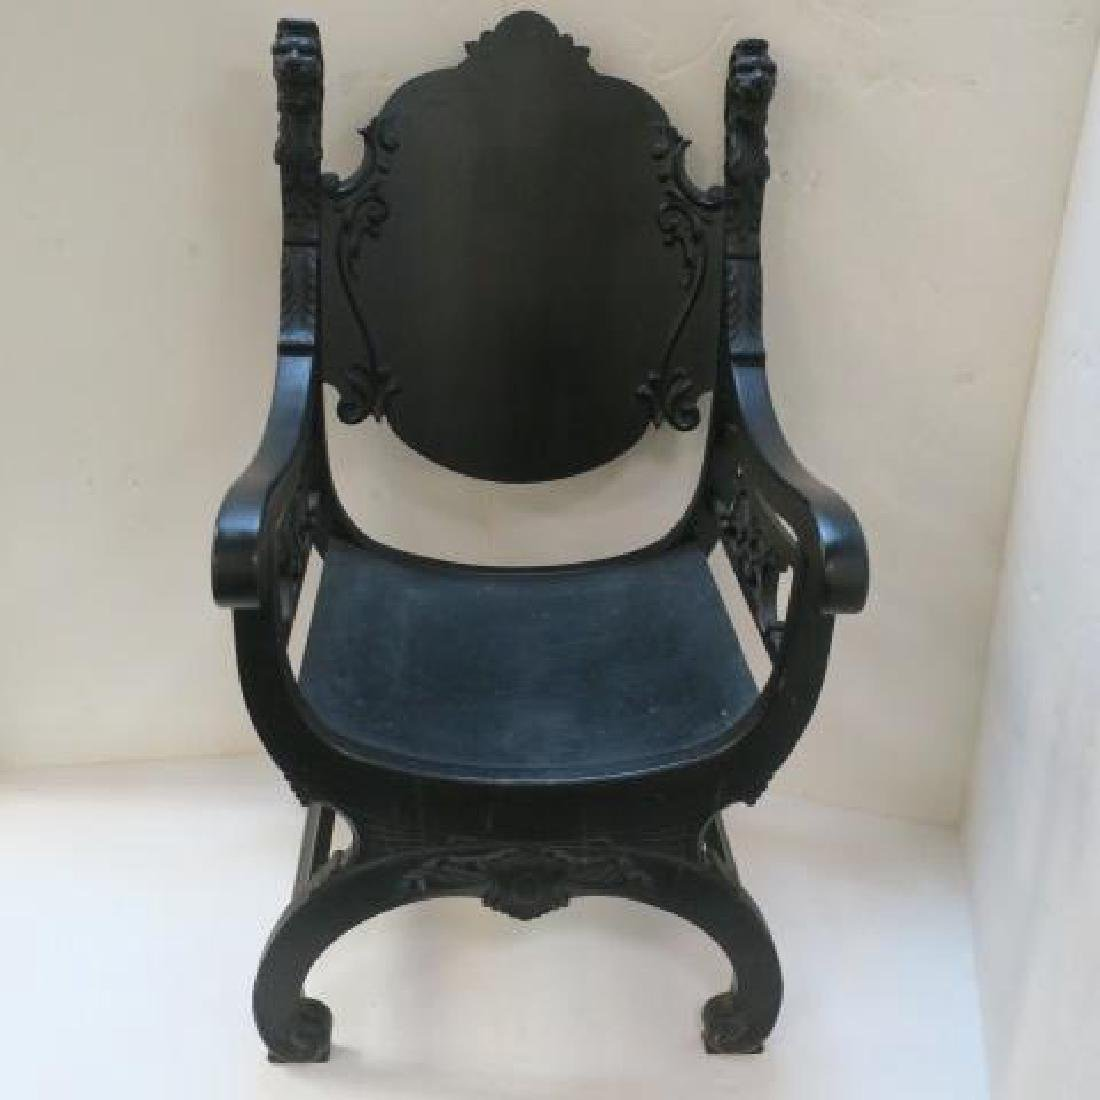 Classical Revival Carved Wooden Throne Chair: